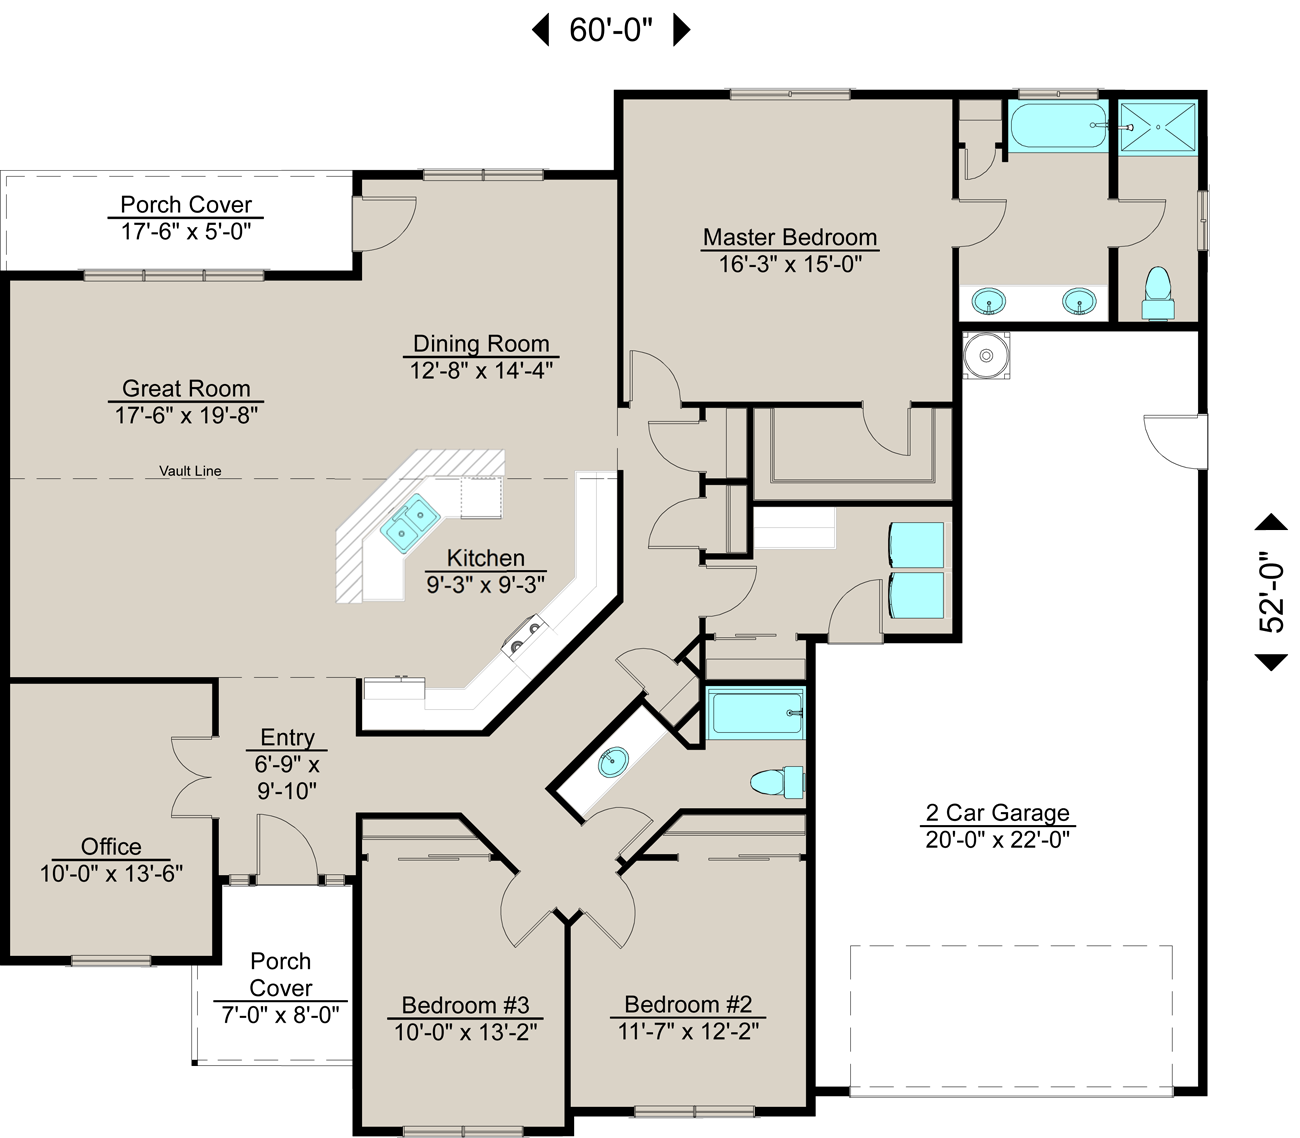 Lexar house plan bedrooms bathrooms with car garage extra space at end of intended for studio also home is the place pinterest plans rh